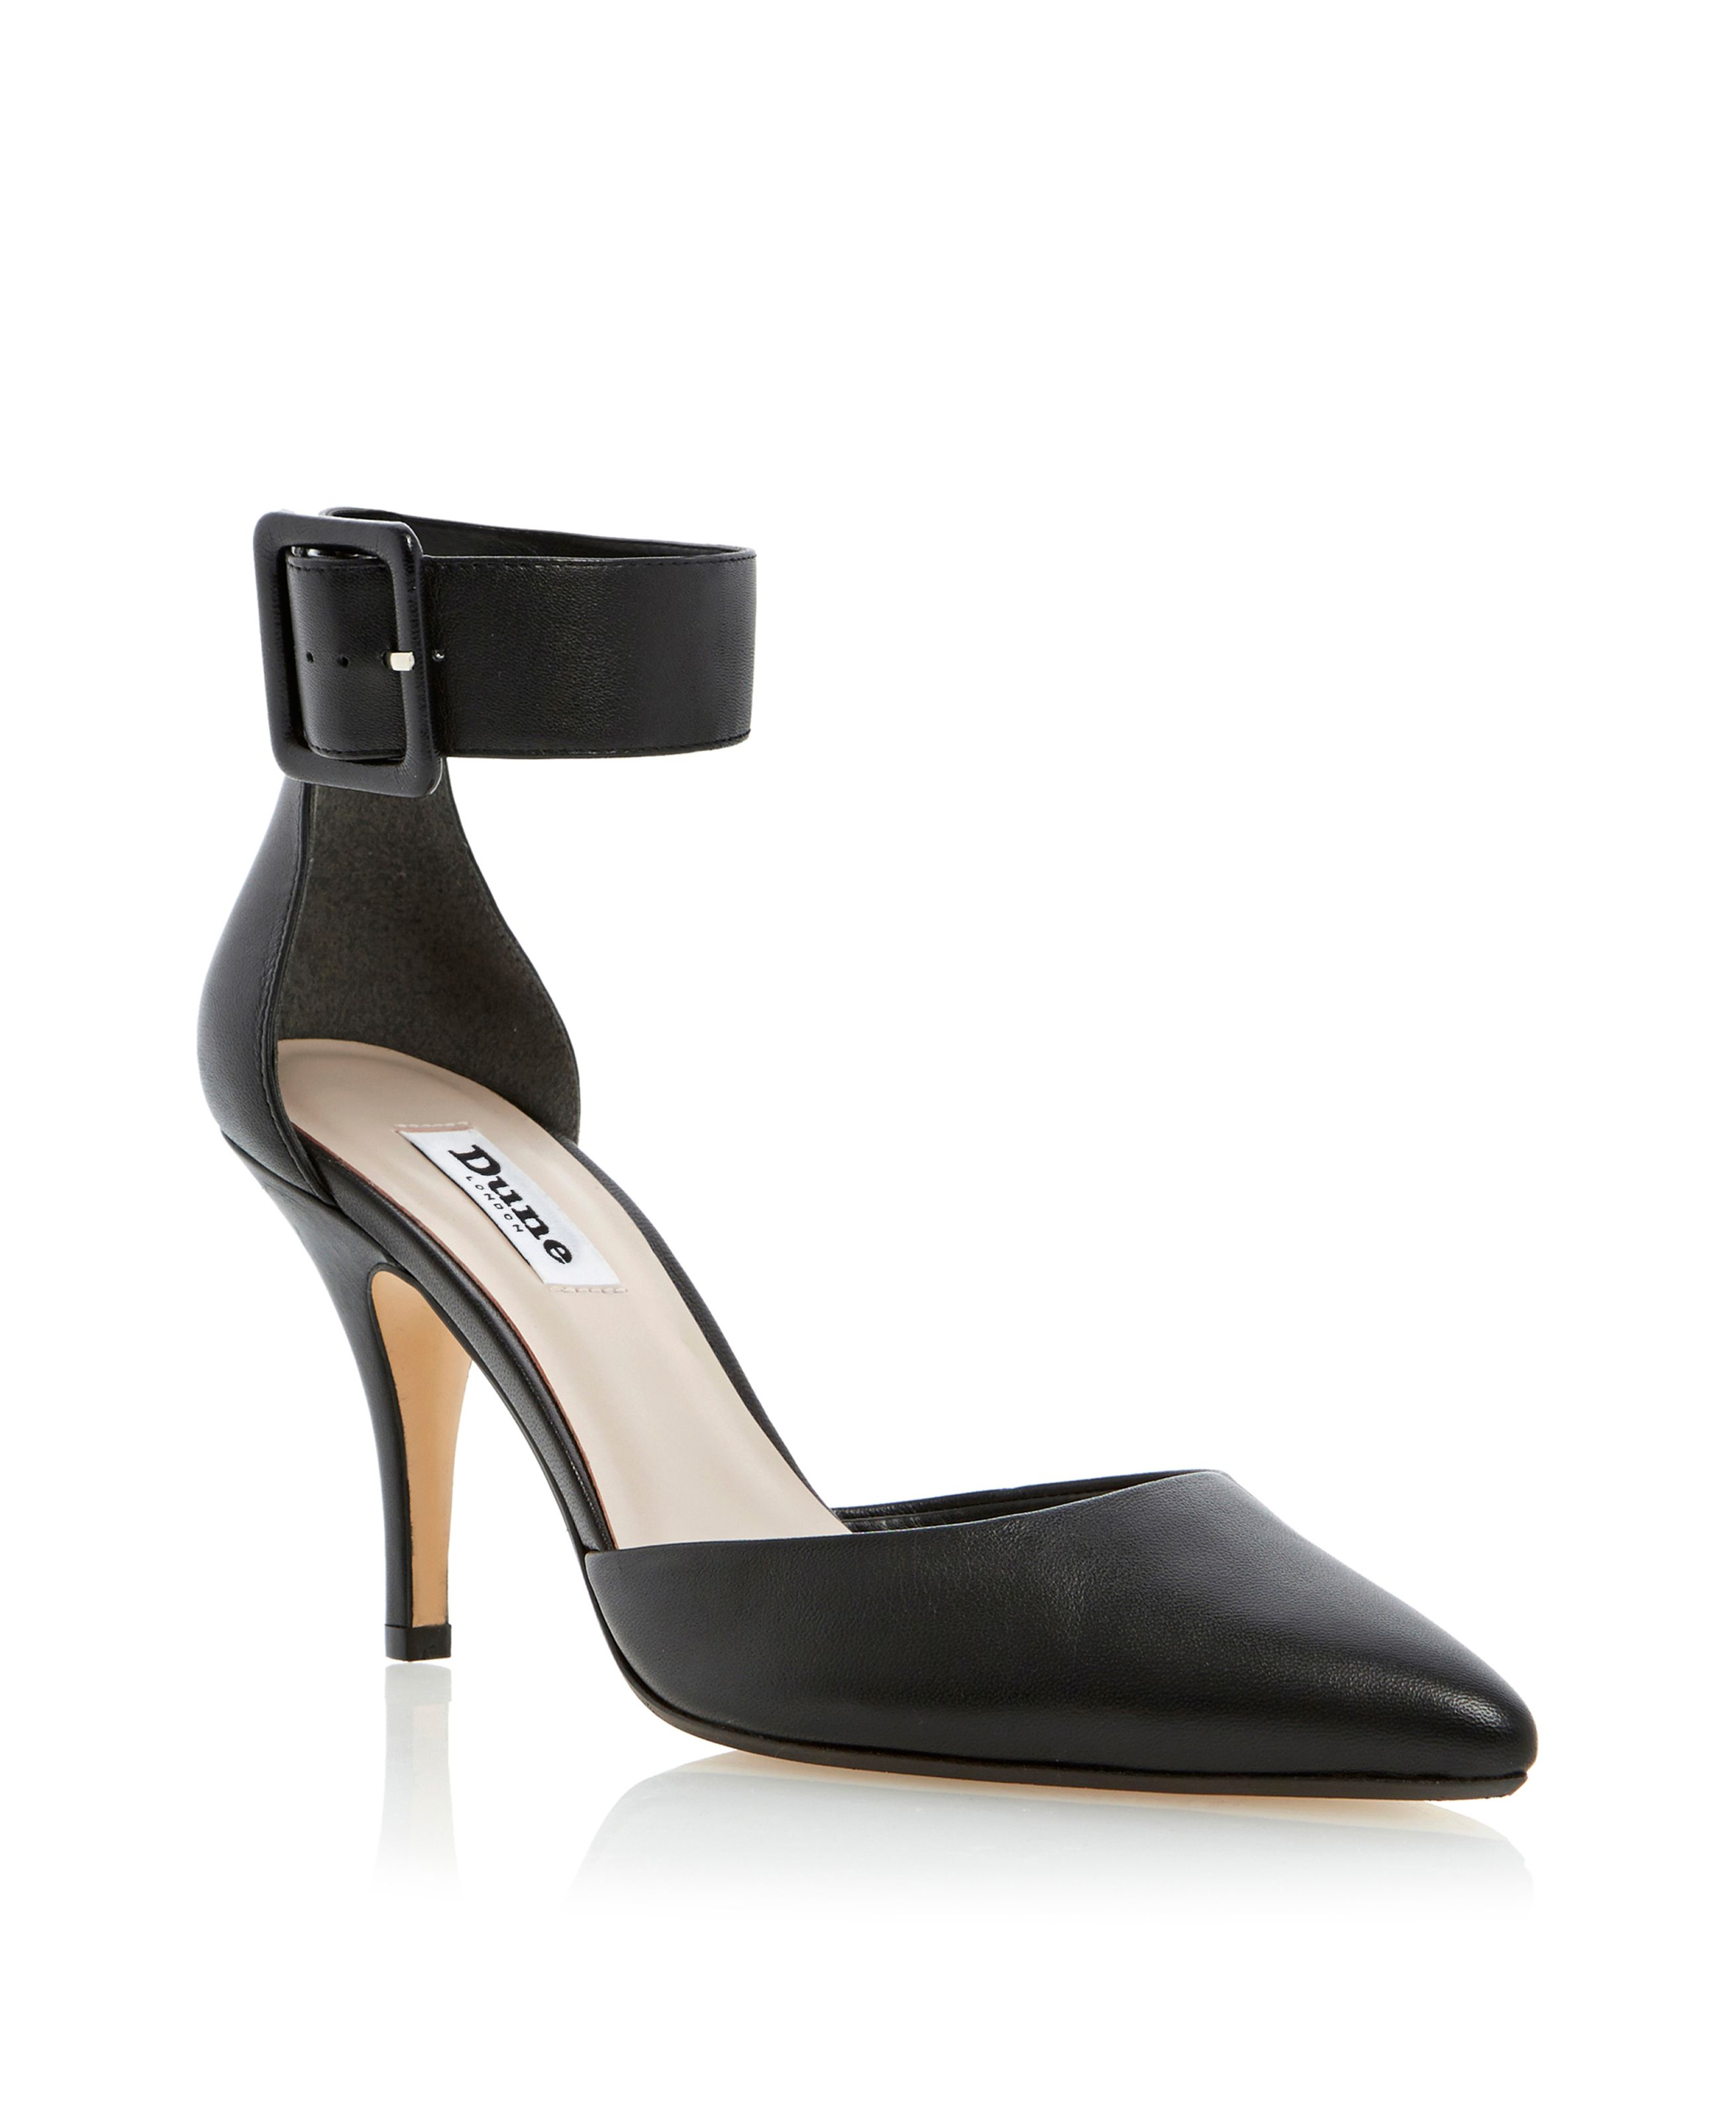 Dune Dolphin two part ankle strap court shoes Black Leather - House of Fraser